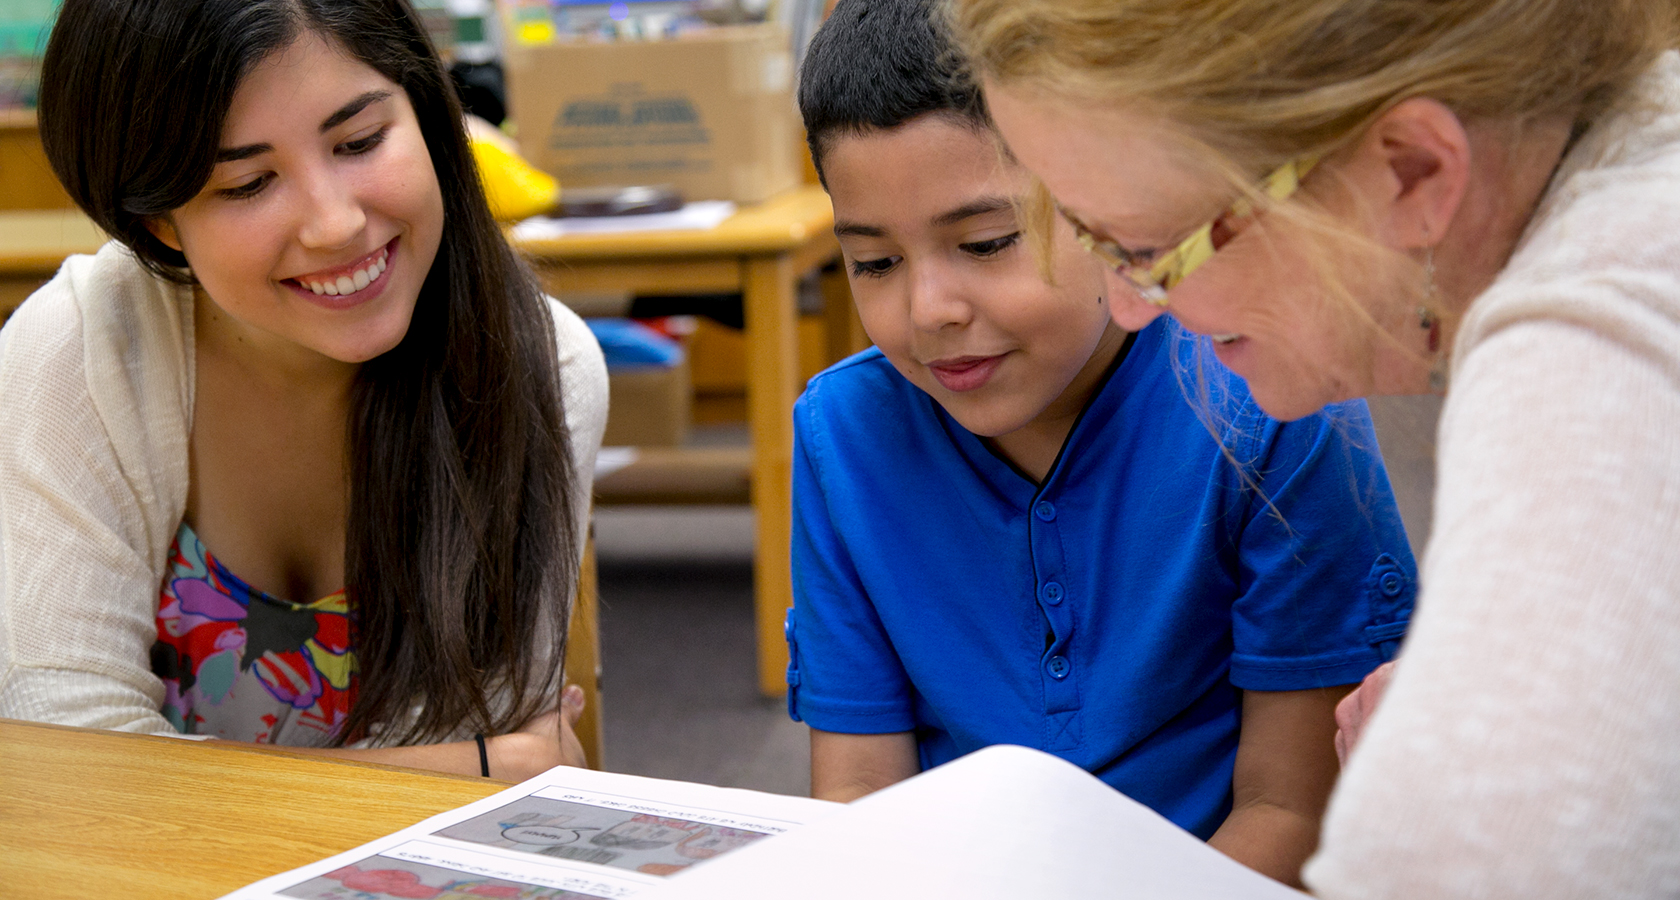 A young student teacher smiles as sits with a boy while a faculty member shows them a reading passage.